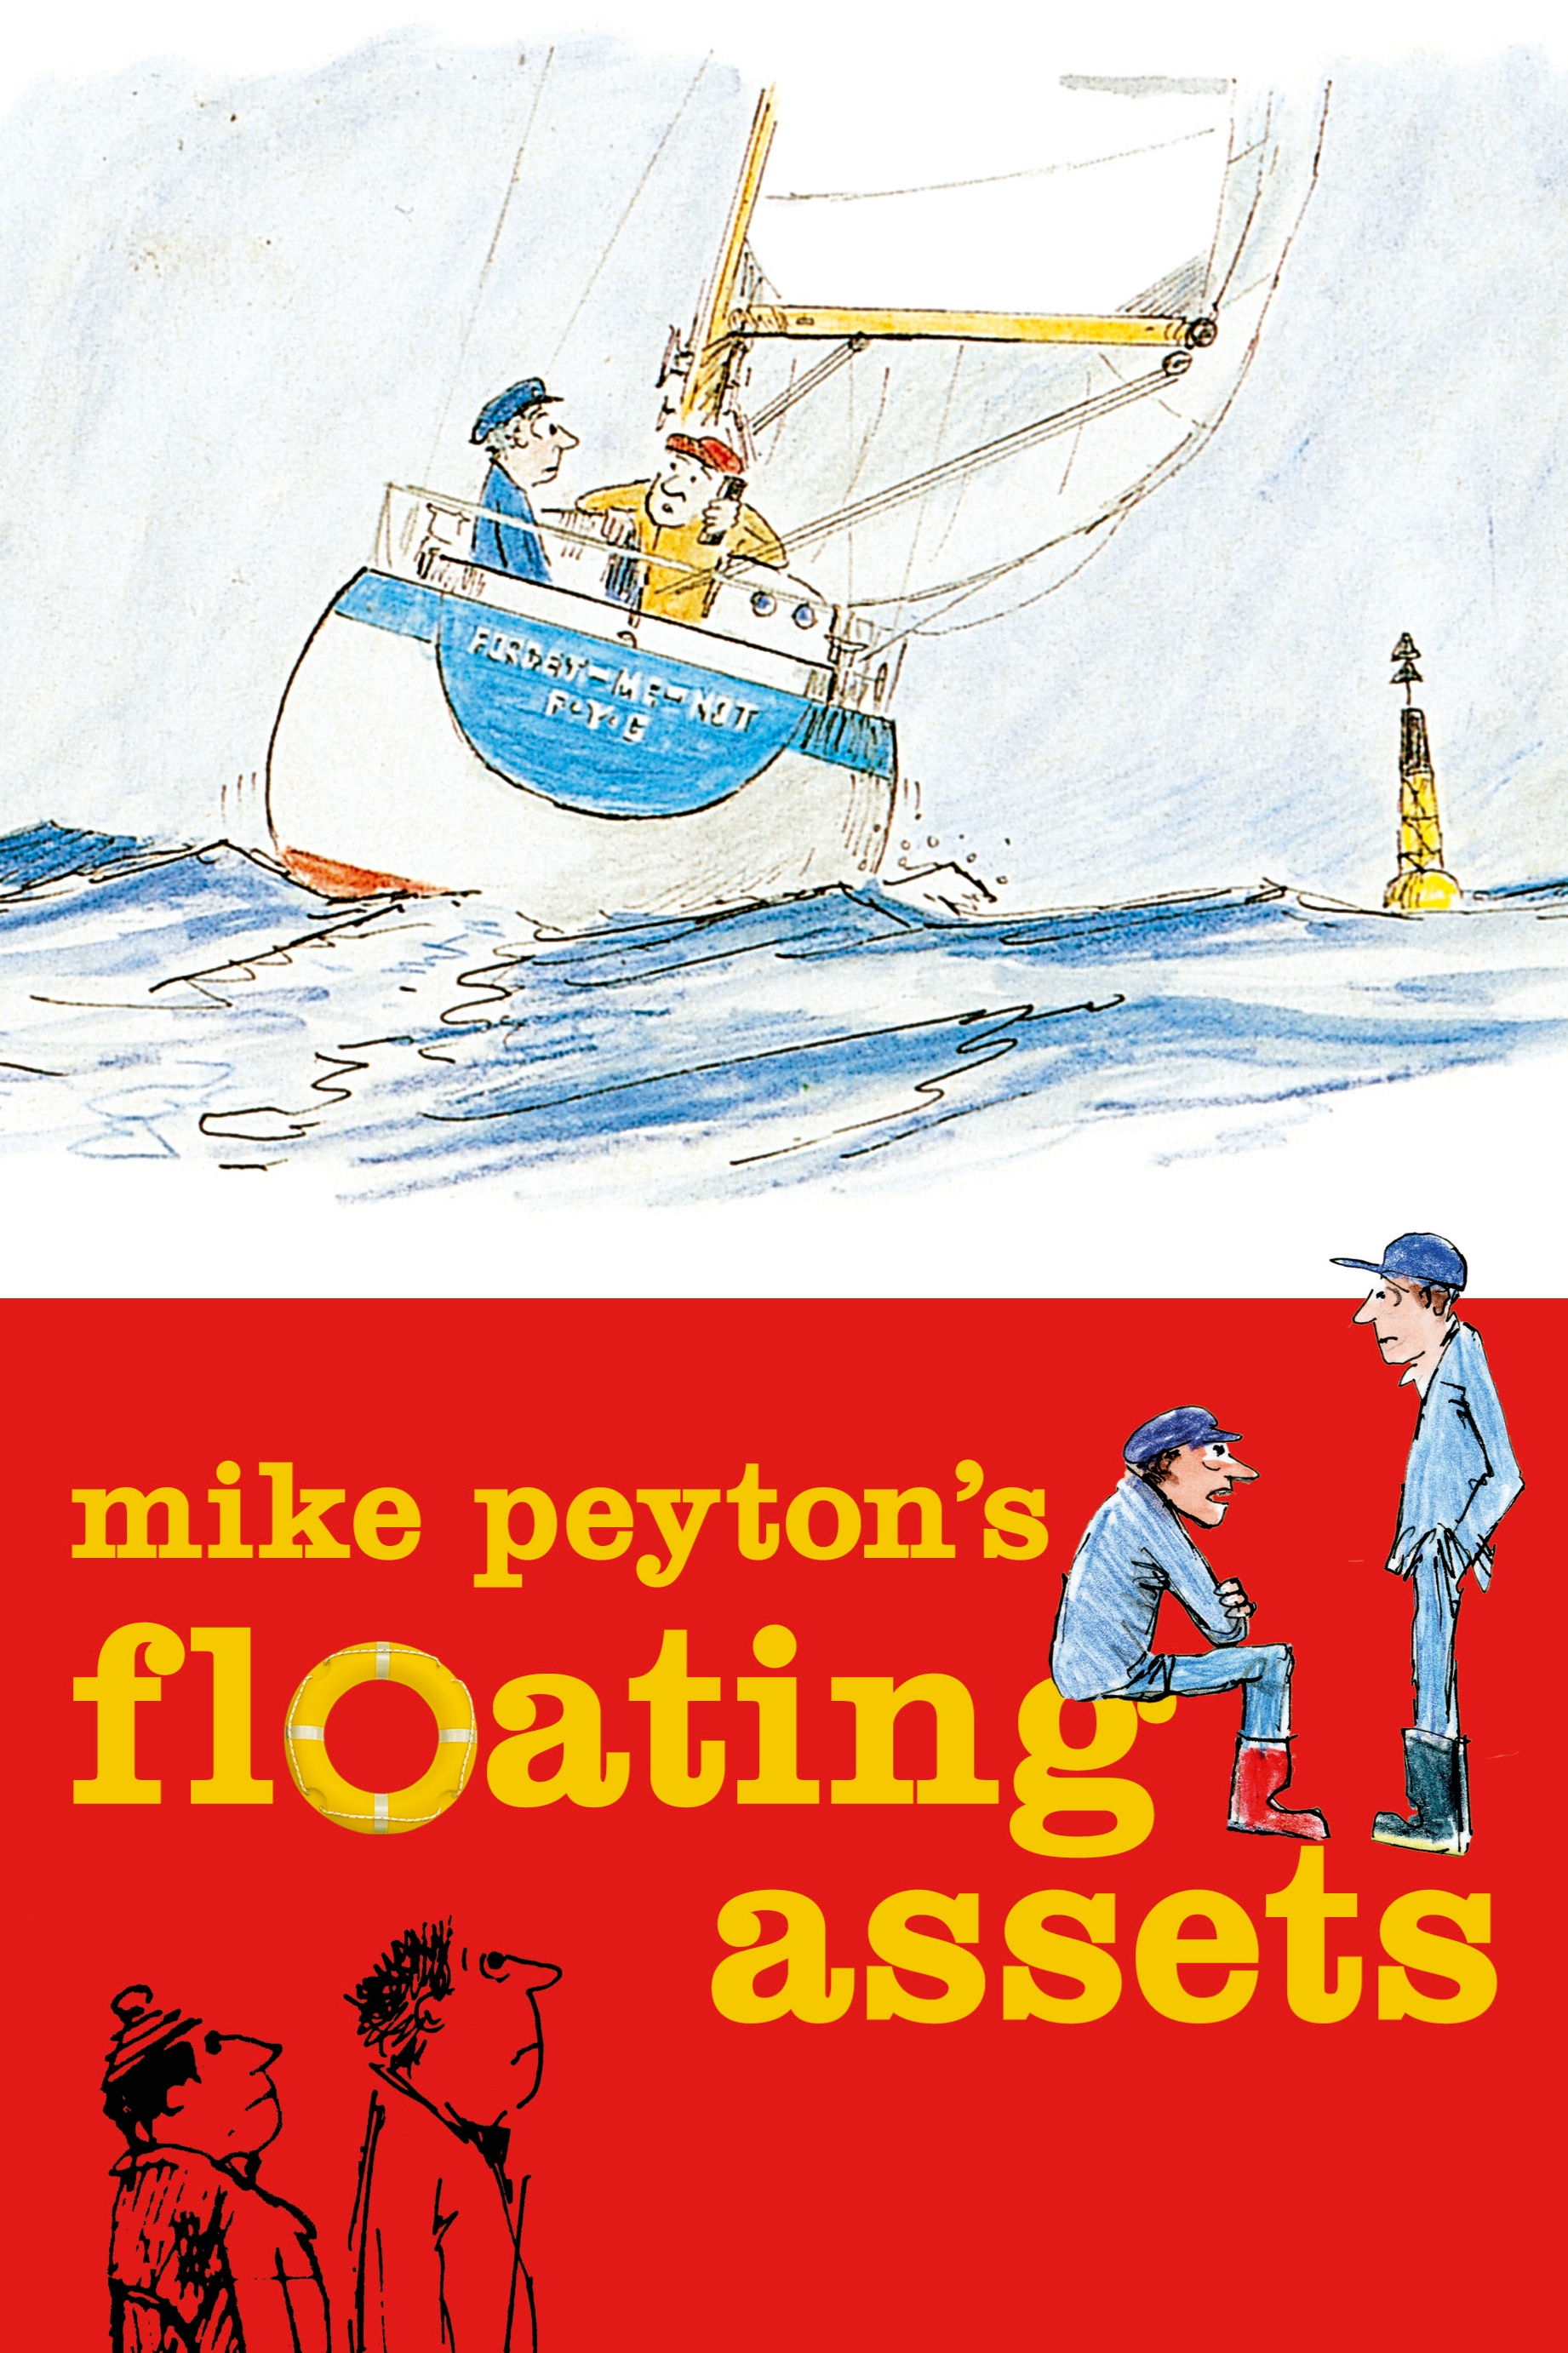 Mike Peyton's Floating Assets